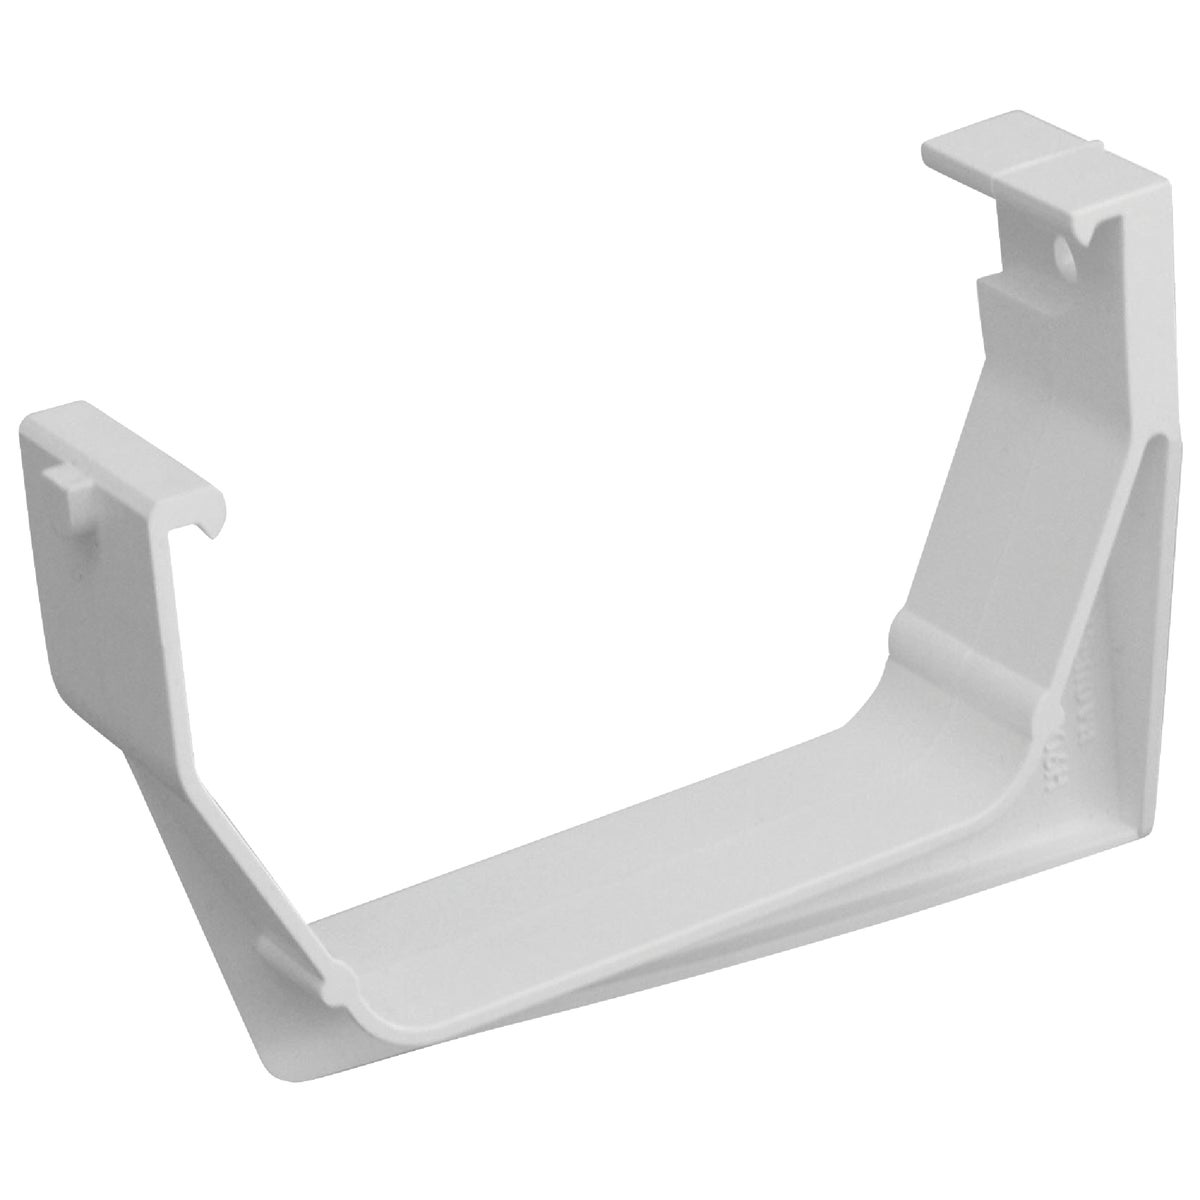 WHT HEAVY GUTTER BRACKET - RW106H by Genova Products